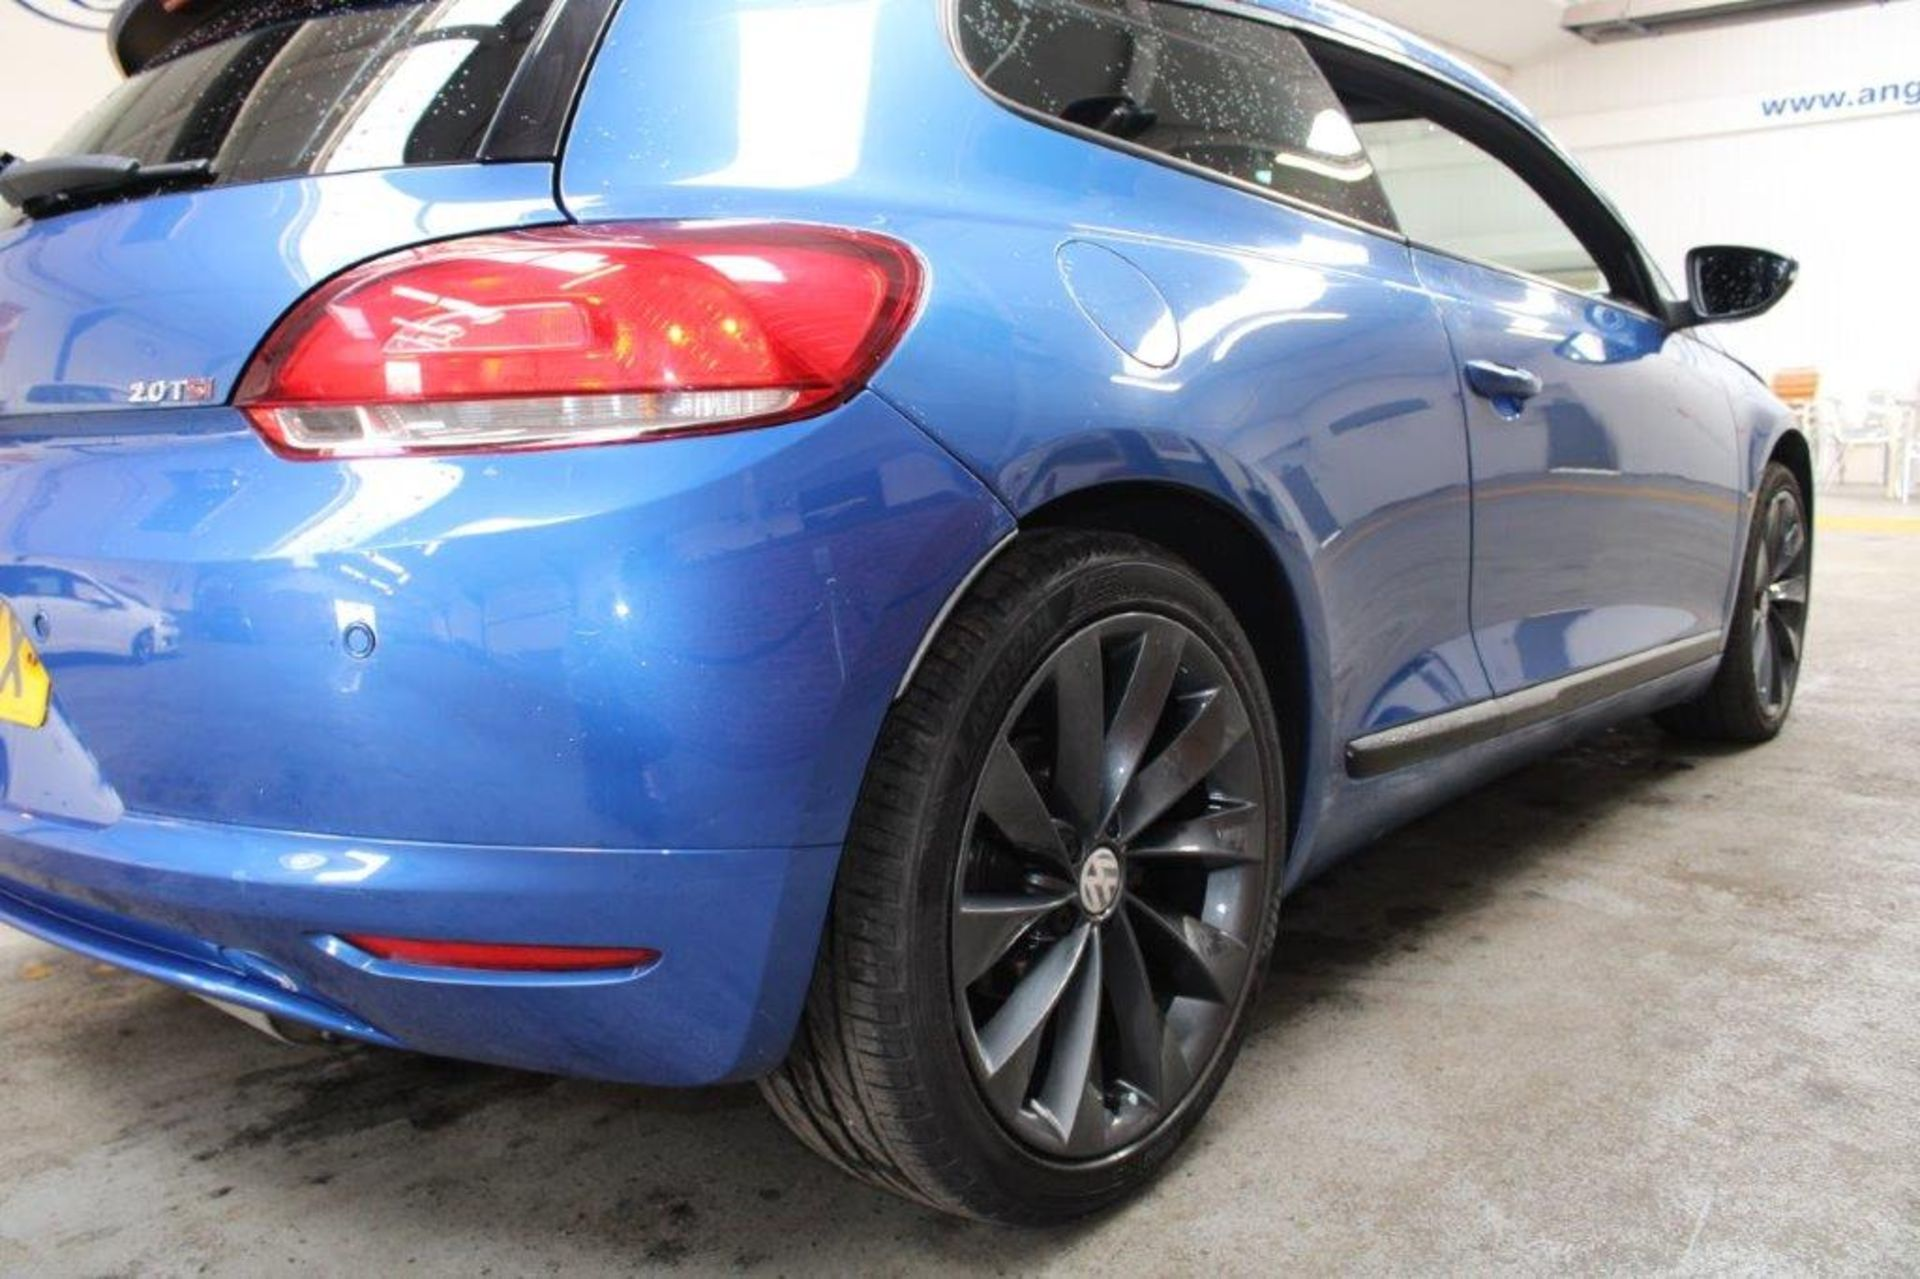 58 08 VW Scirocco GT - Image 21 of 29